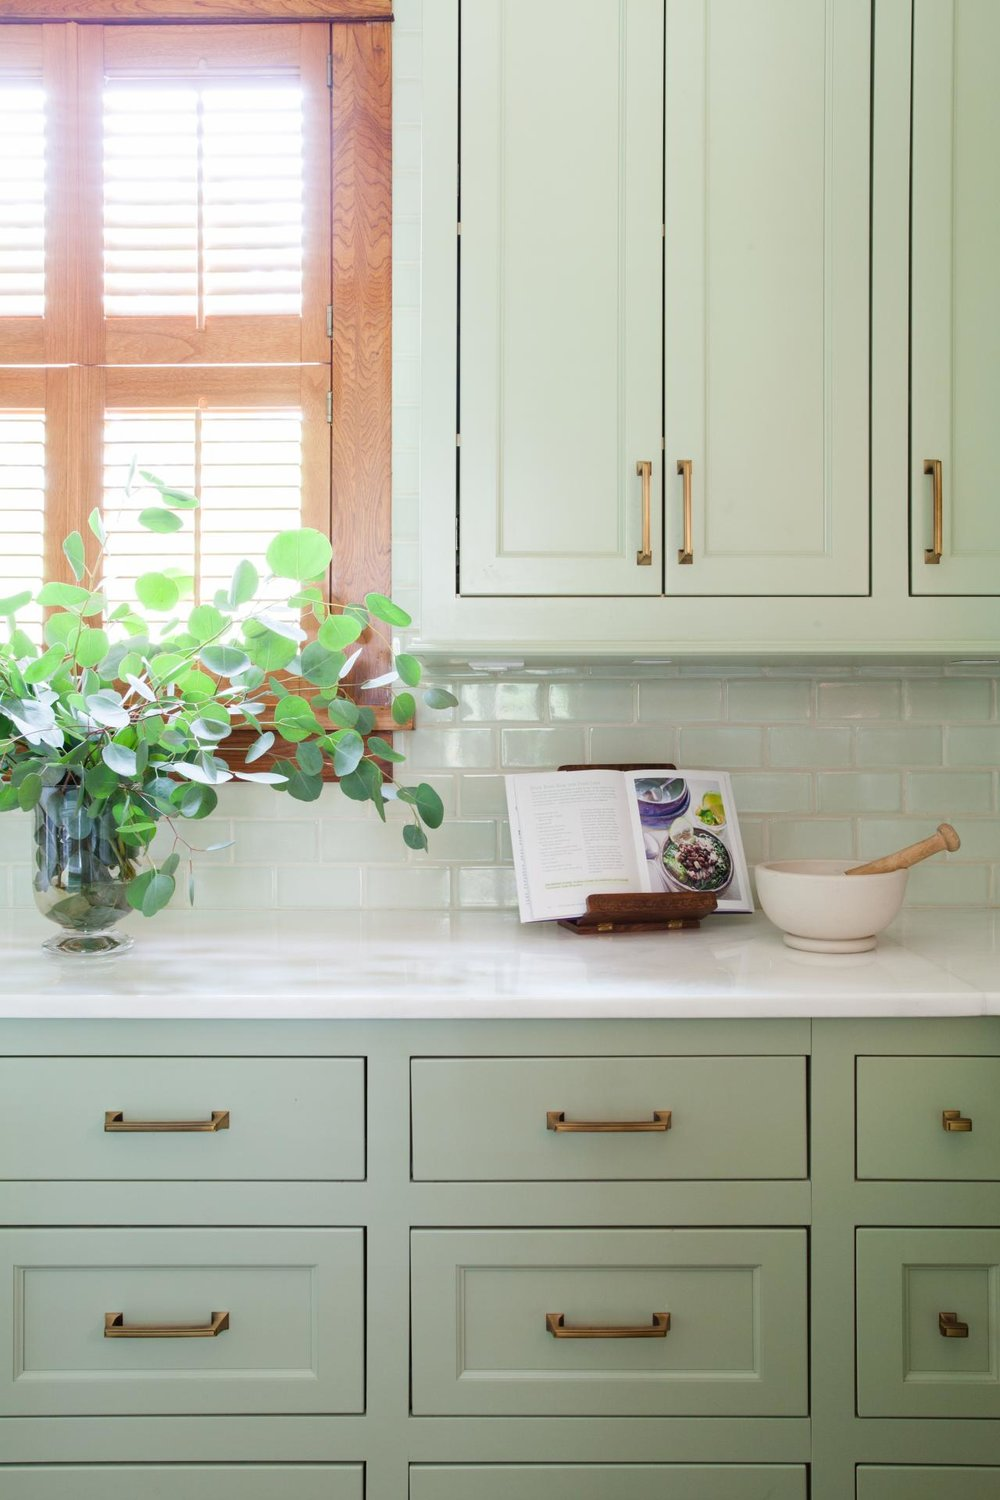 2018 home decor trends: sage (kitchen cabinets, furniture, decor)